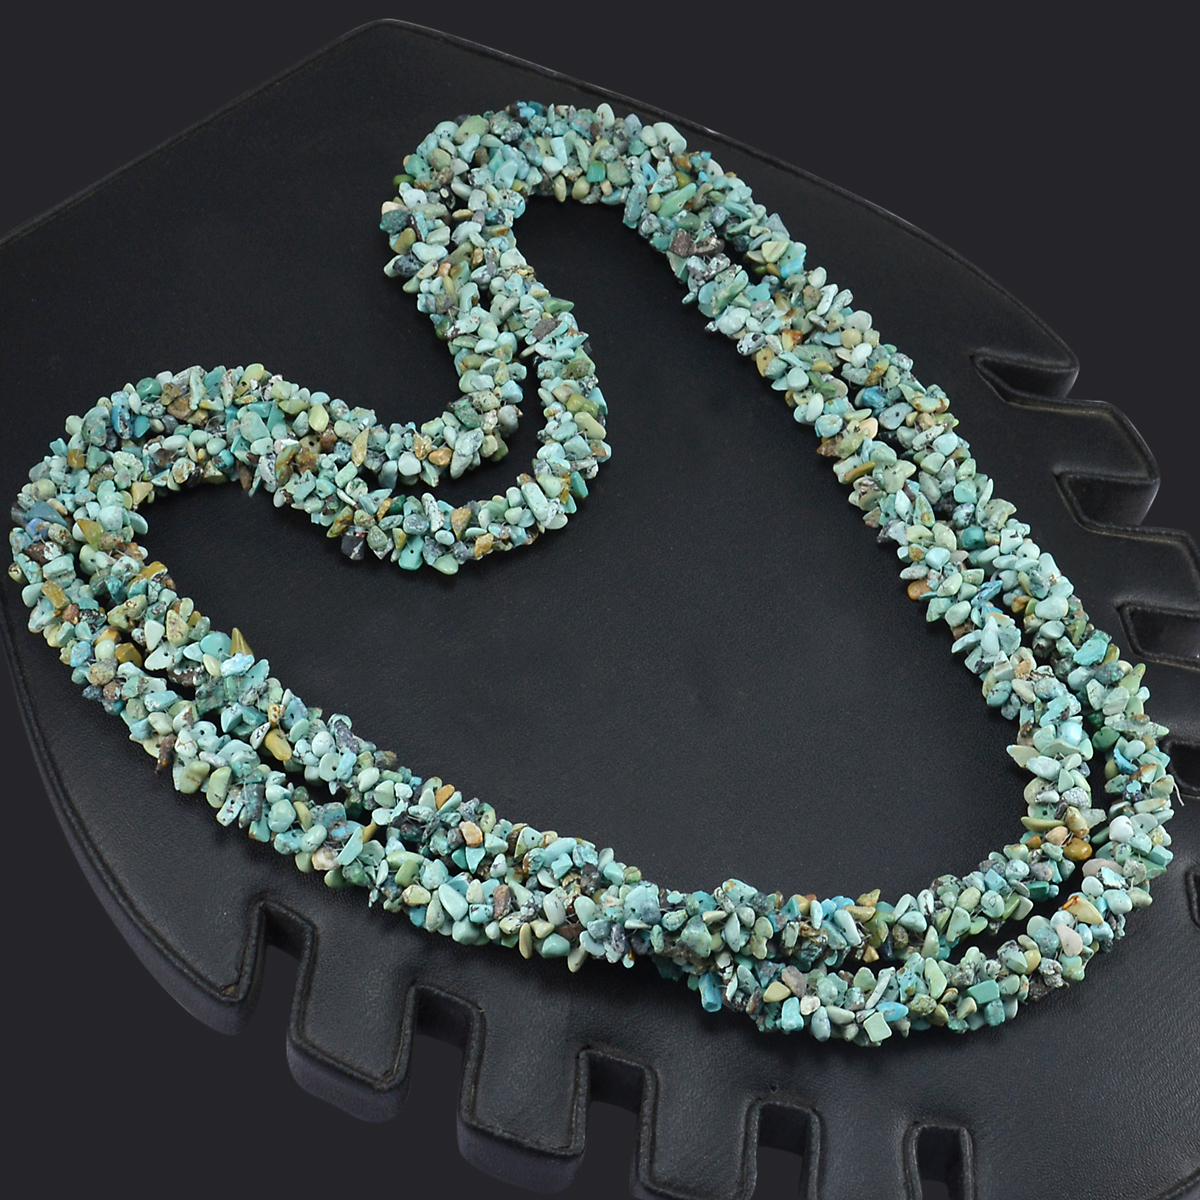 Turquoise Gemstone Chips Necklace PG-156067